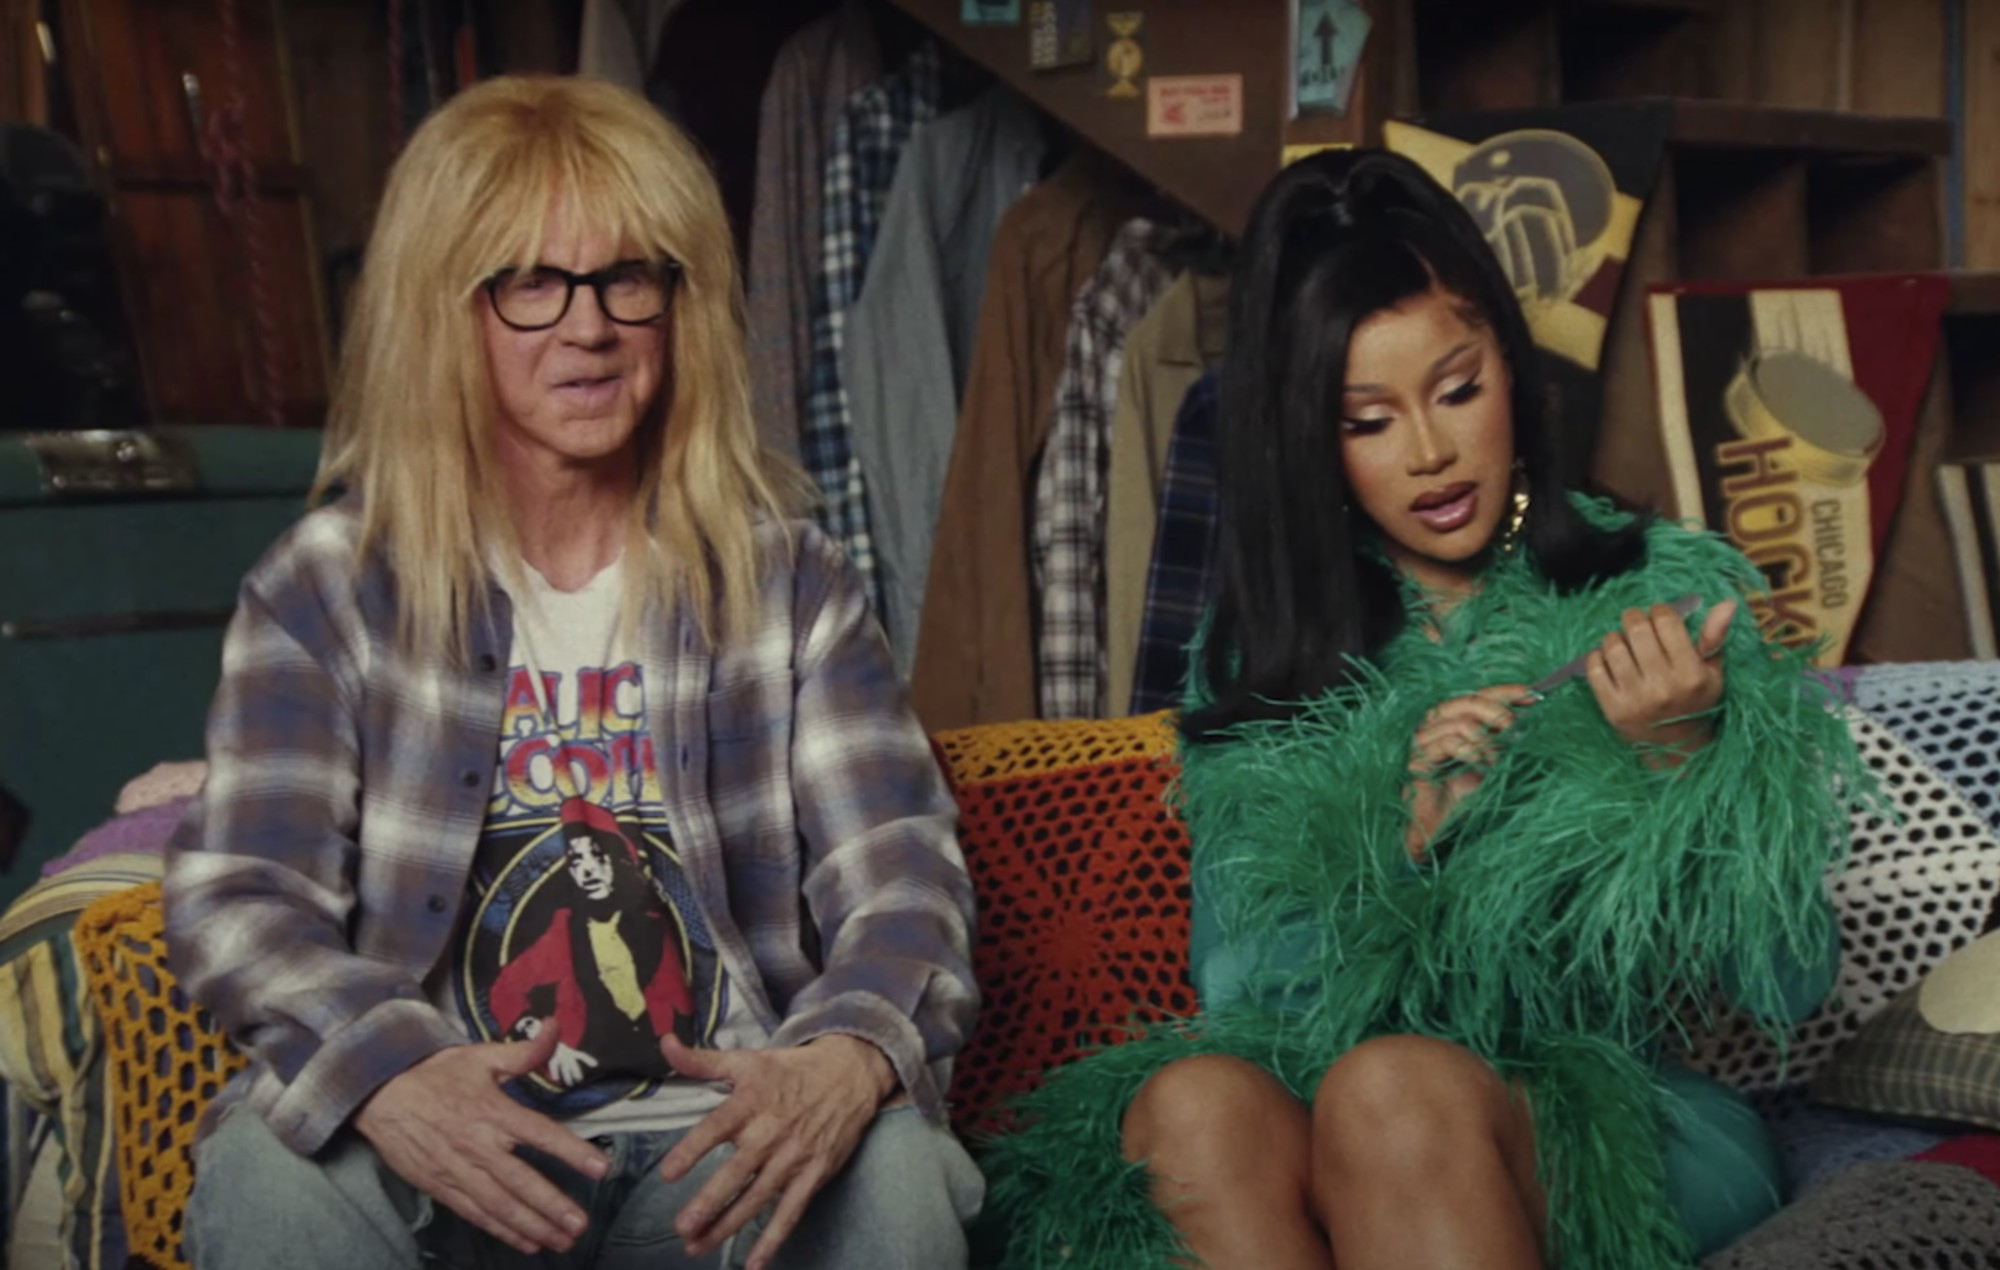 Watch Cardi B team up with Wayne and Garth for second 'Wayne's World' Uber Eats advert - NME